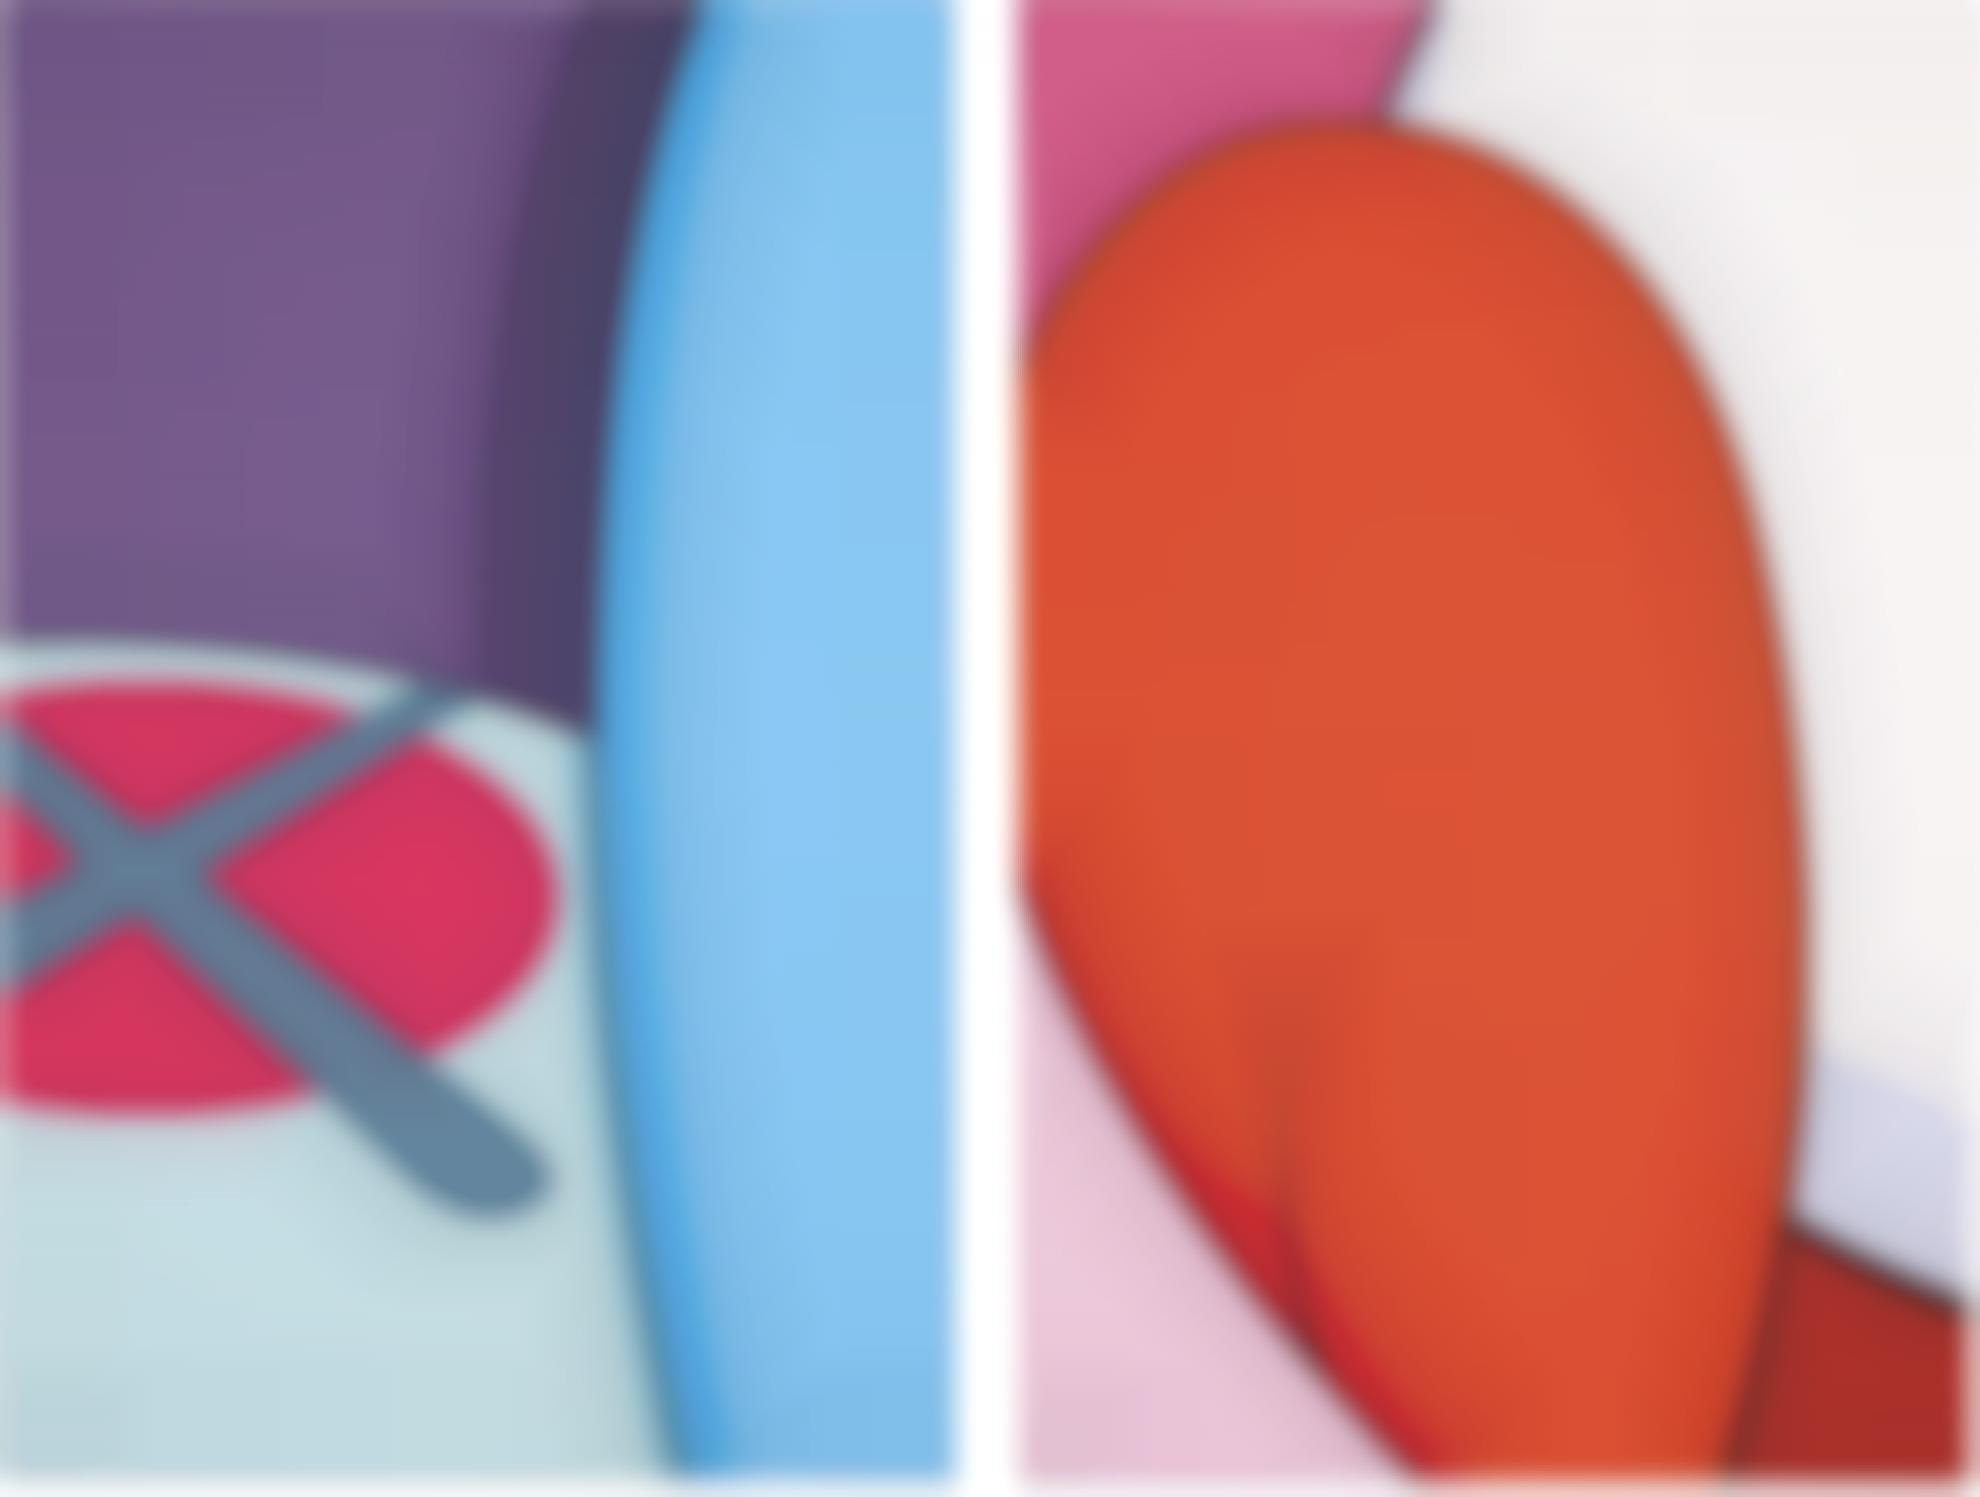 KAWS-No Reply (Two Works)-